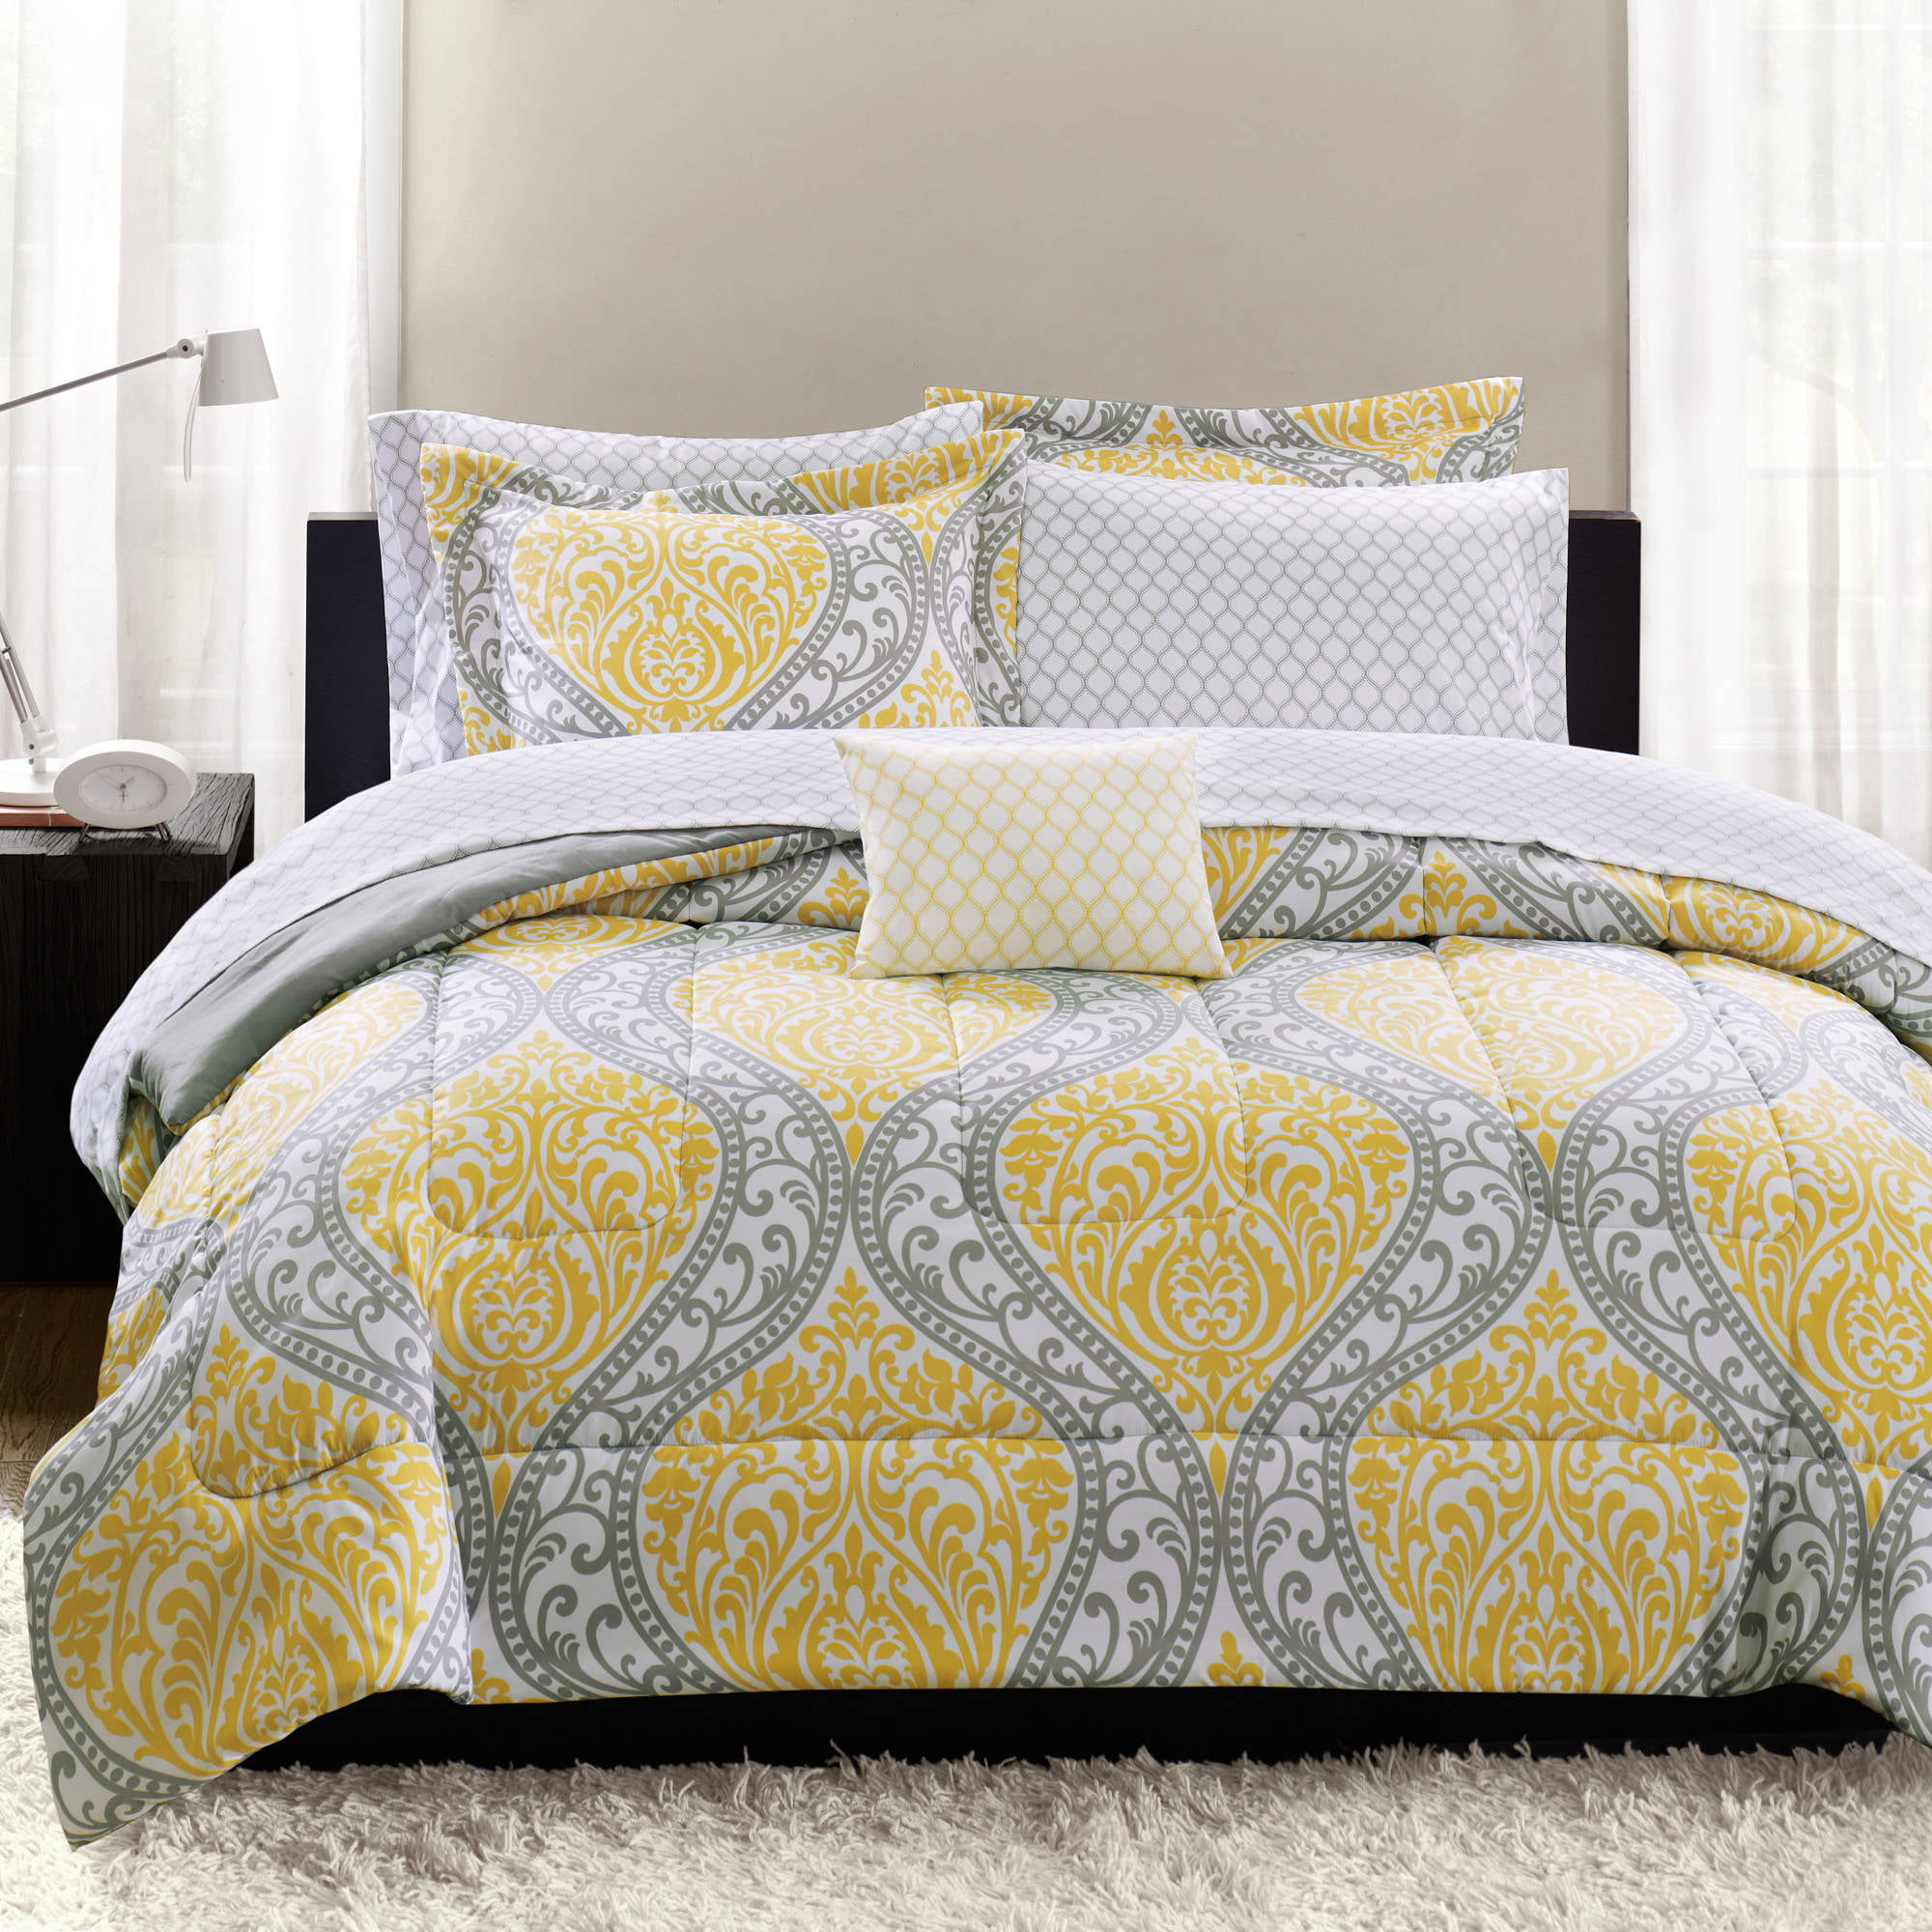 mainstays yellow damask coordinated bedding set bed in a bag walmartcom